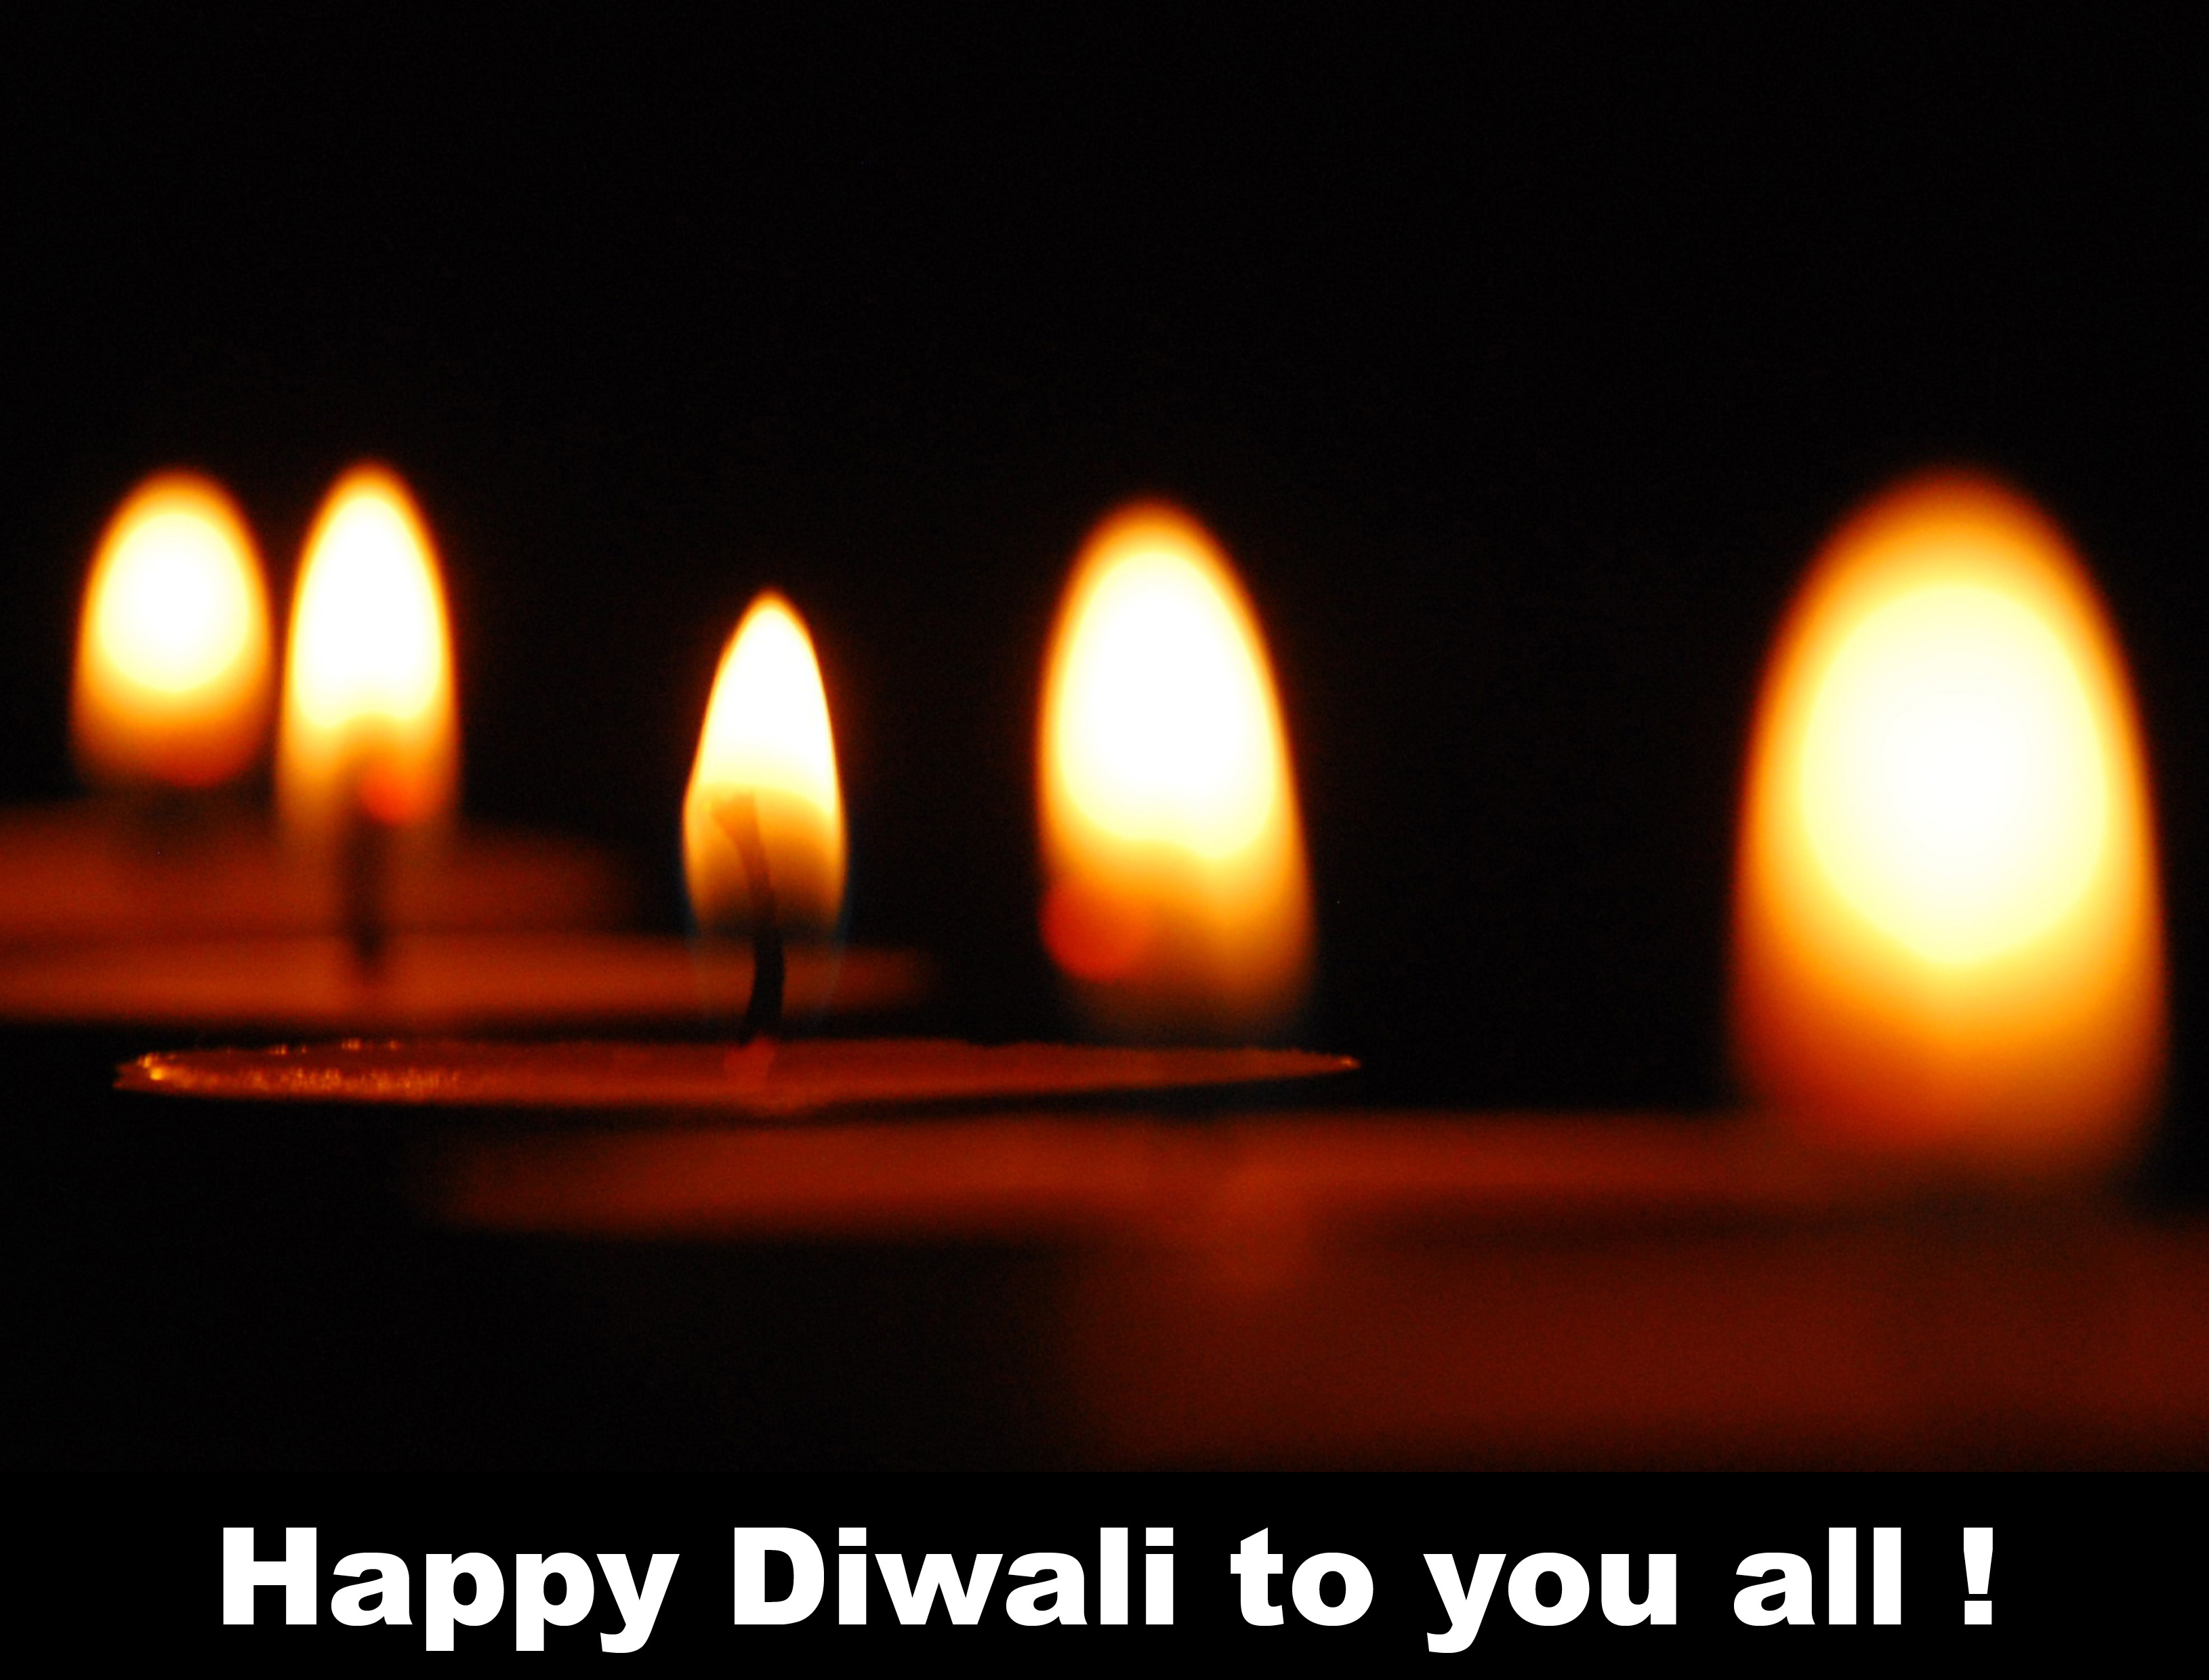 Happy Diwali to you all !